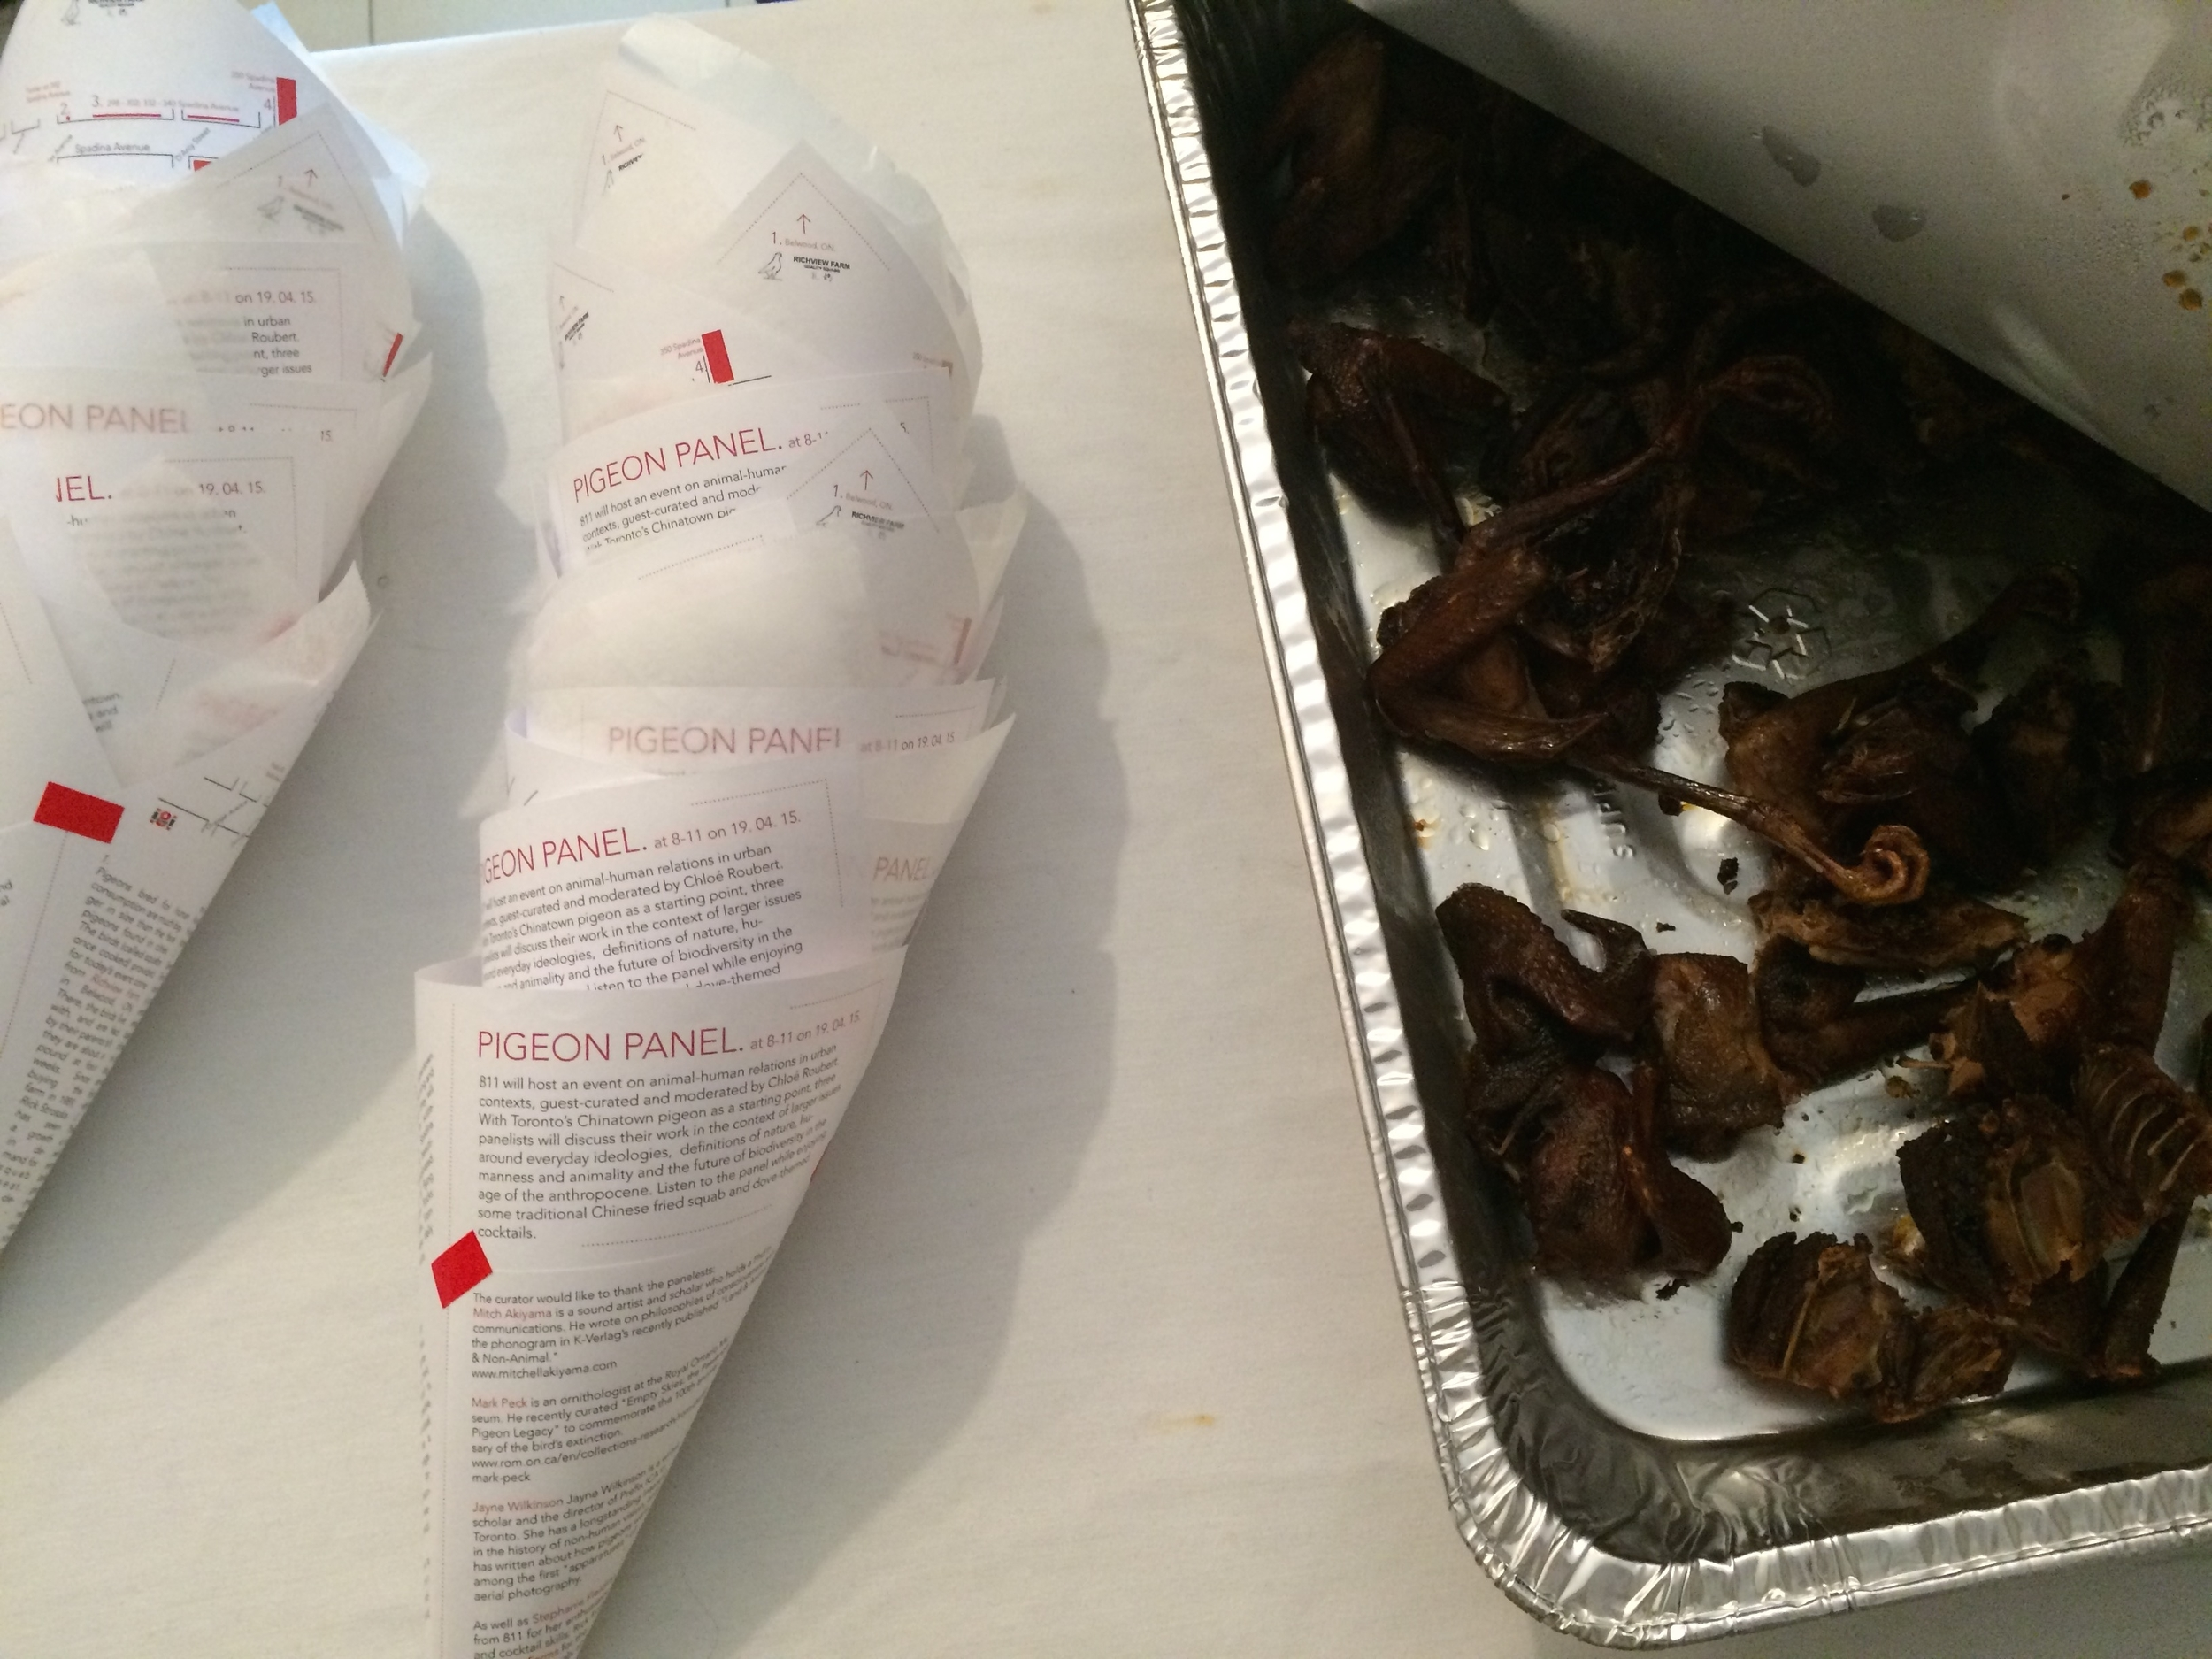 The participants could purchase Chinatown-made BBQ-ed pigeon in their 'pigeon cones.'